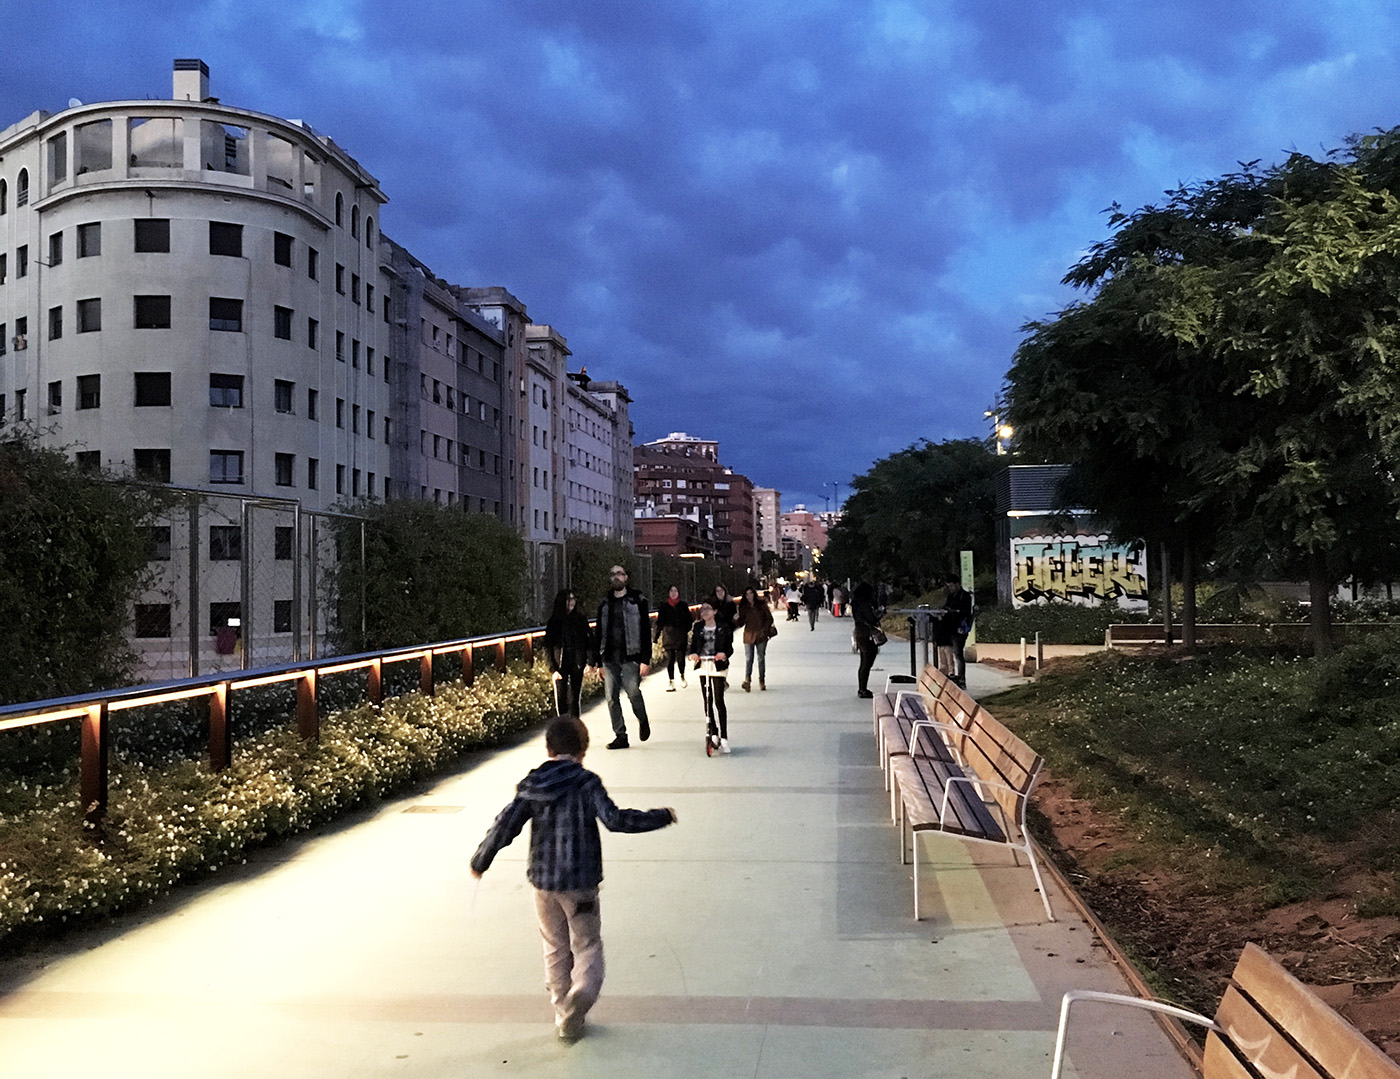 Jardins de la Rambla de Sants: Barcelona's version of the High Line is popular with the locals, who are also wary of green gentrification.